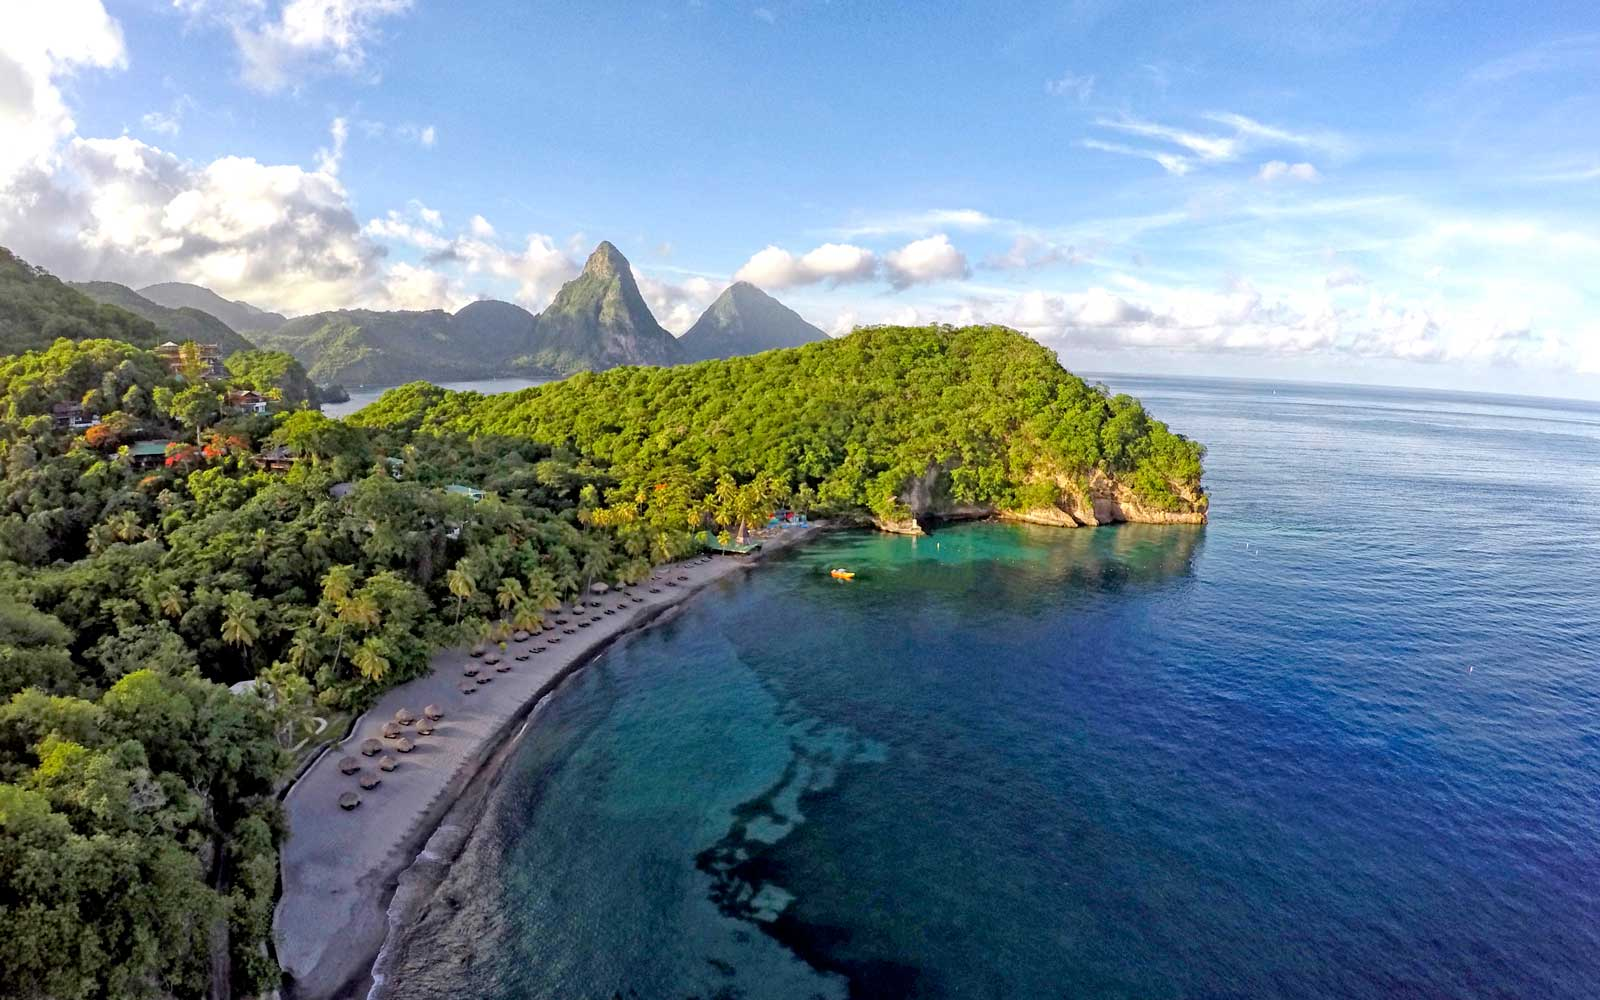 Aerial view of the Anse Chastanet resort complex in St Lucia